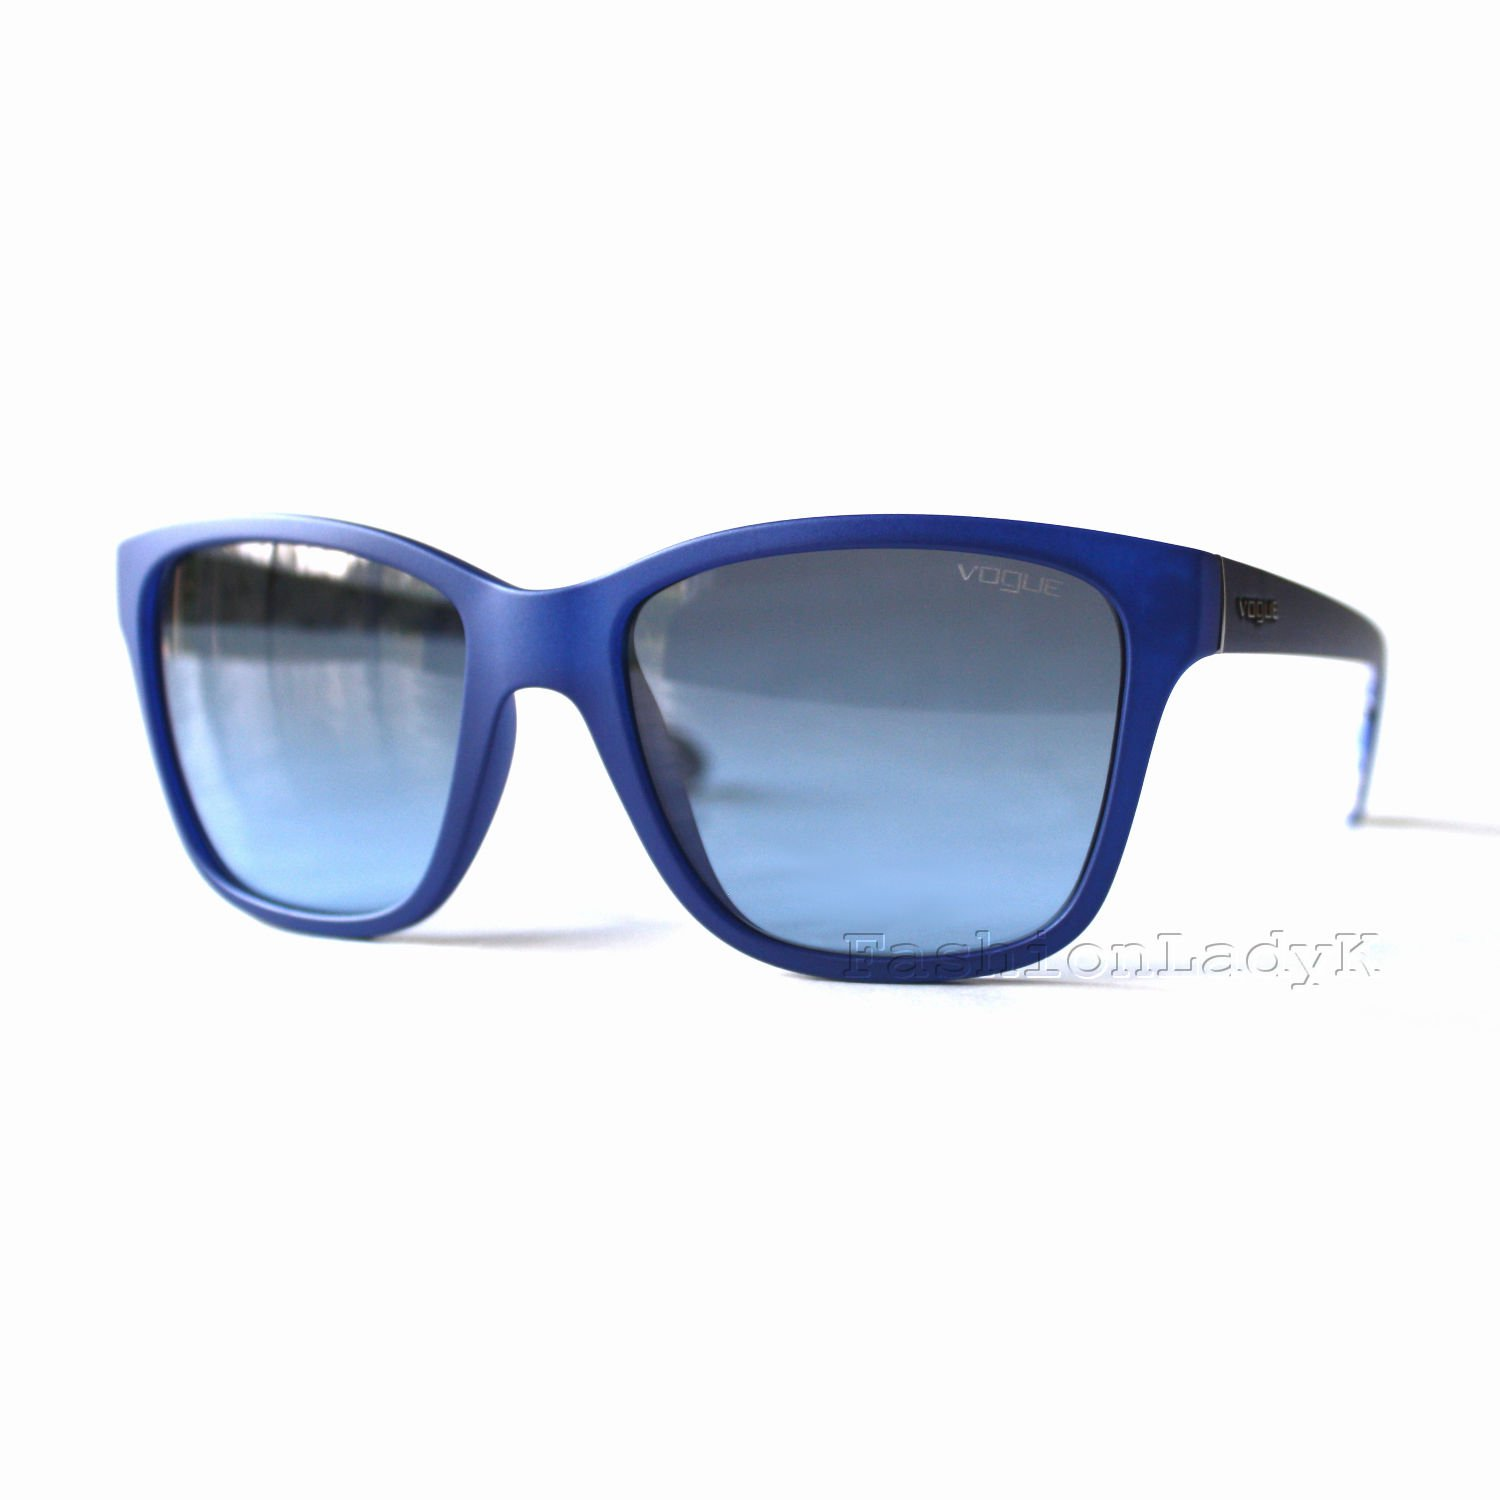 VOGUE Women Blue Sunglasses VO2896-S 2225-8F New w/ Case